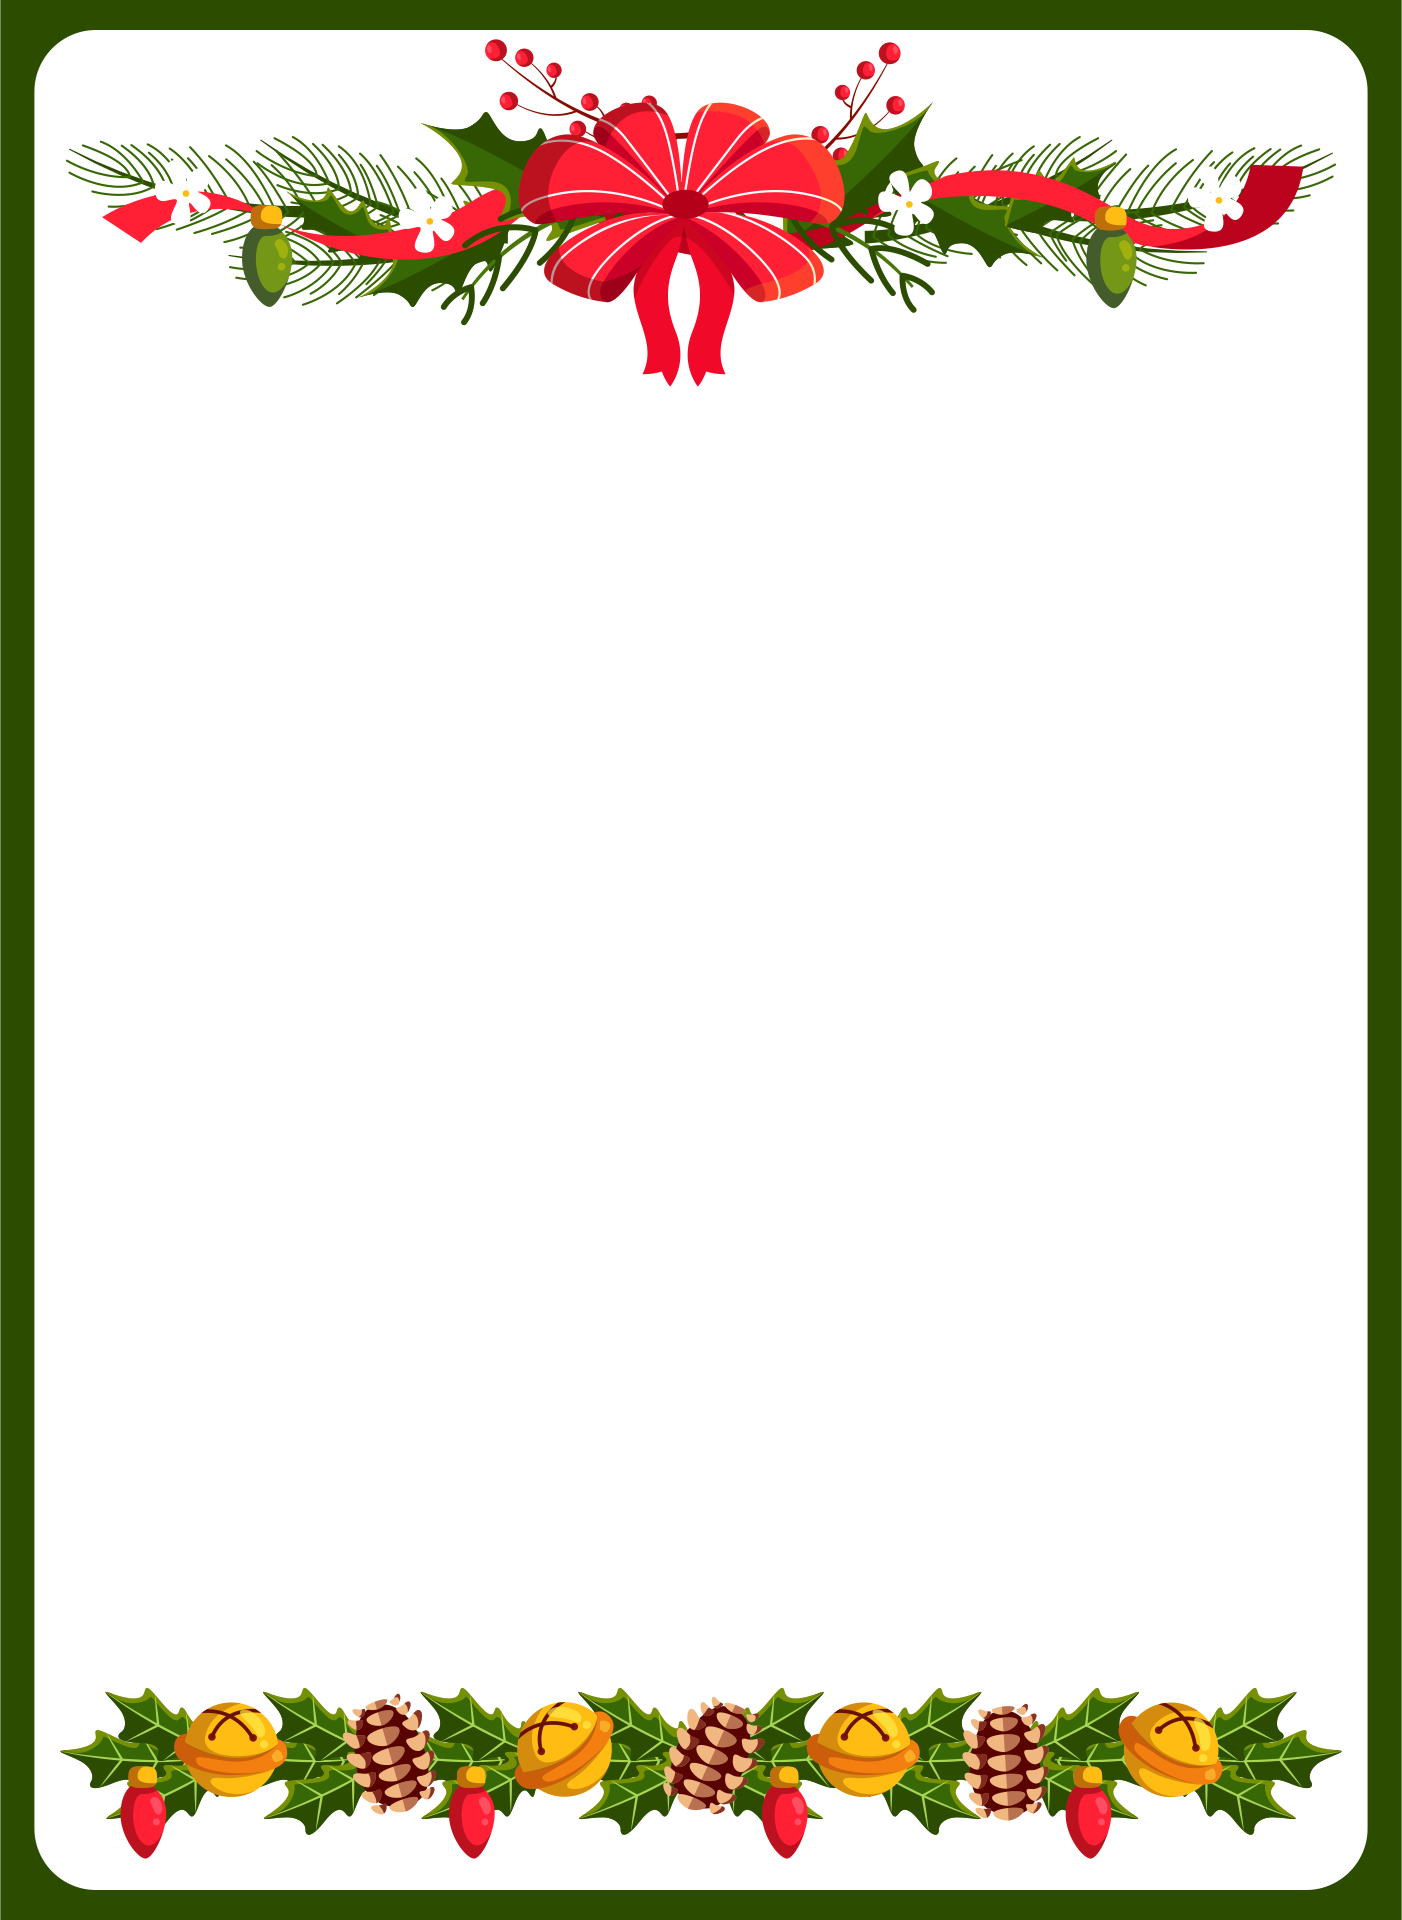 Landscape borders for word : Best images of printable christmas borders landscape free